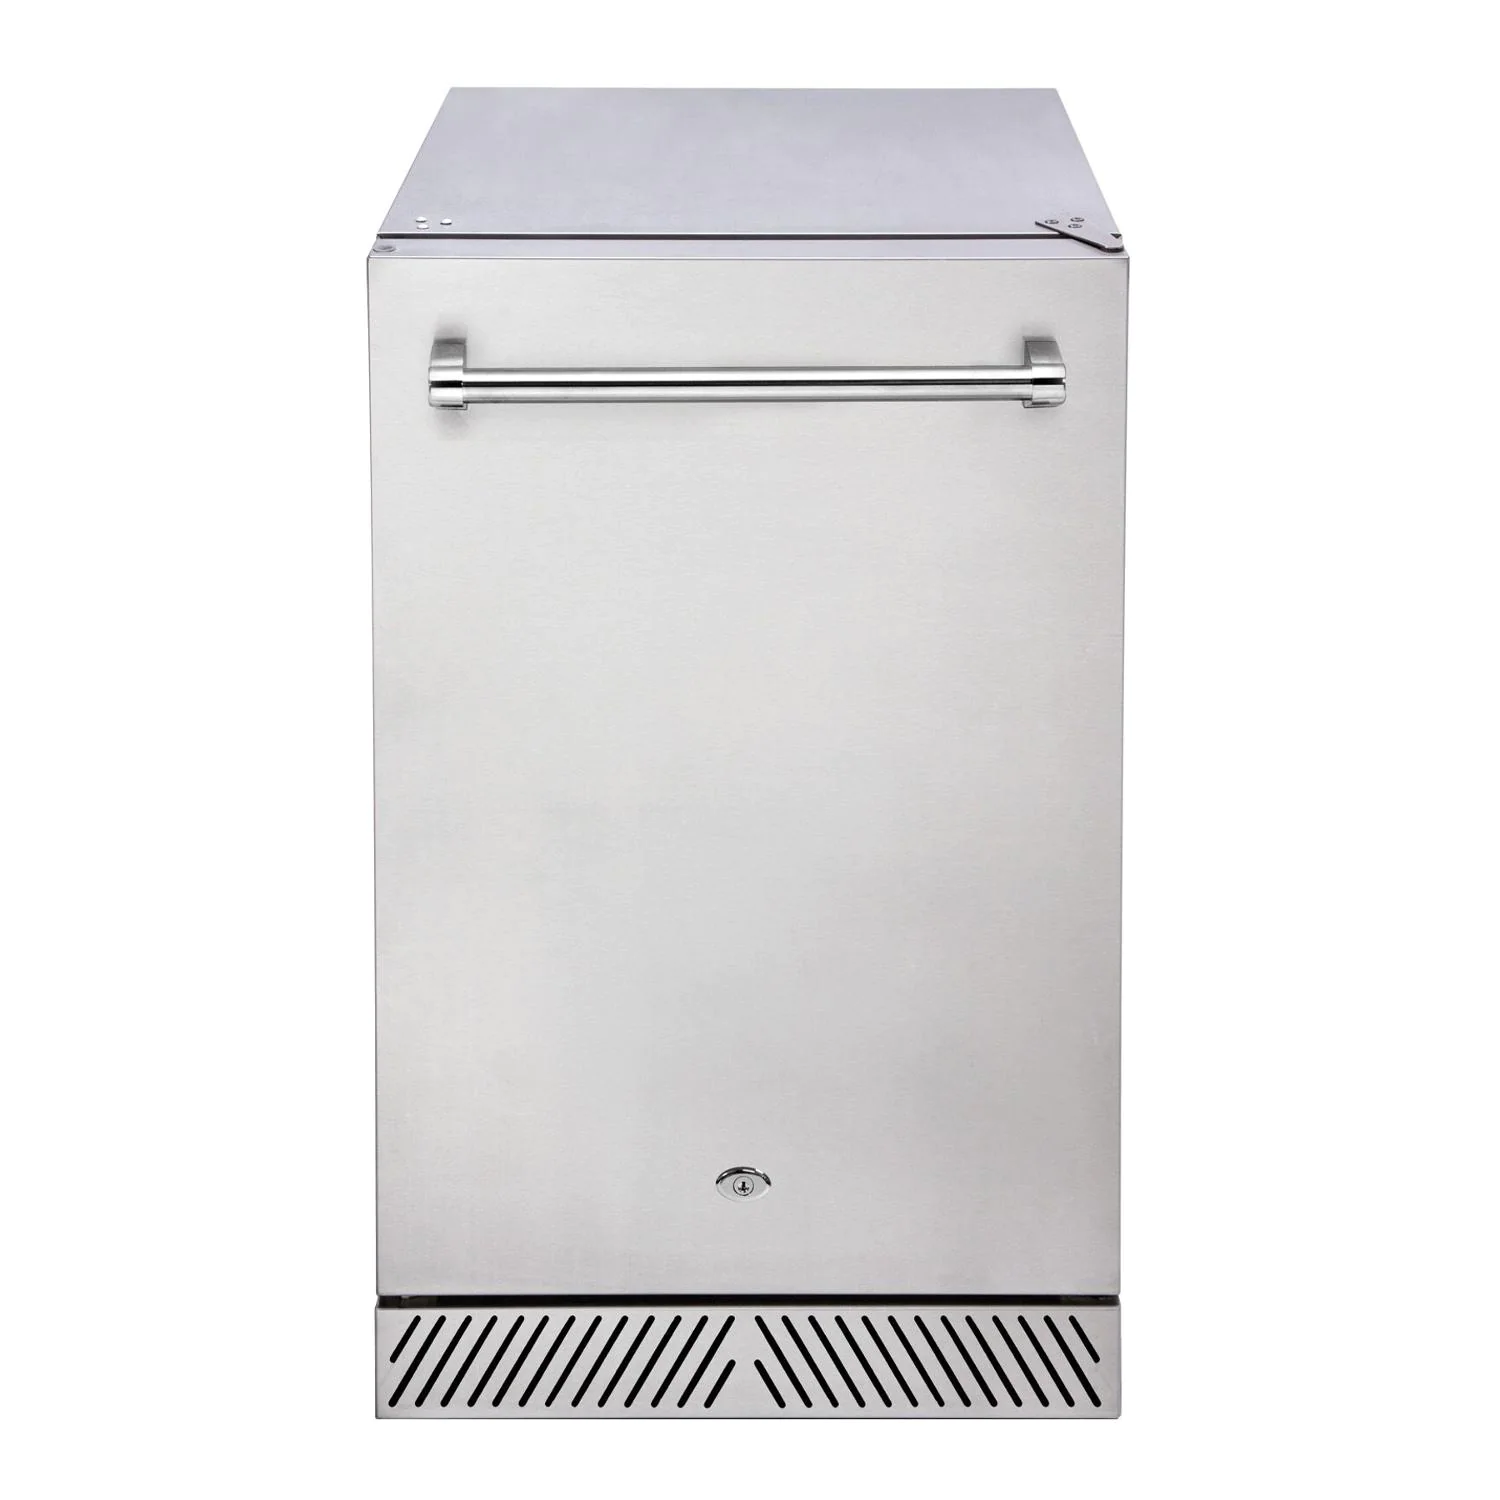 Delta Heat 20-Inch 4.1 Cu. Ft. Outdoor Rated Compact Refrigerator With Lock - DHOR20